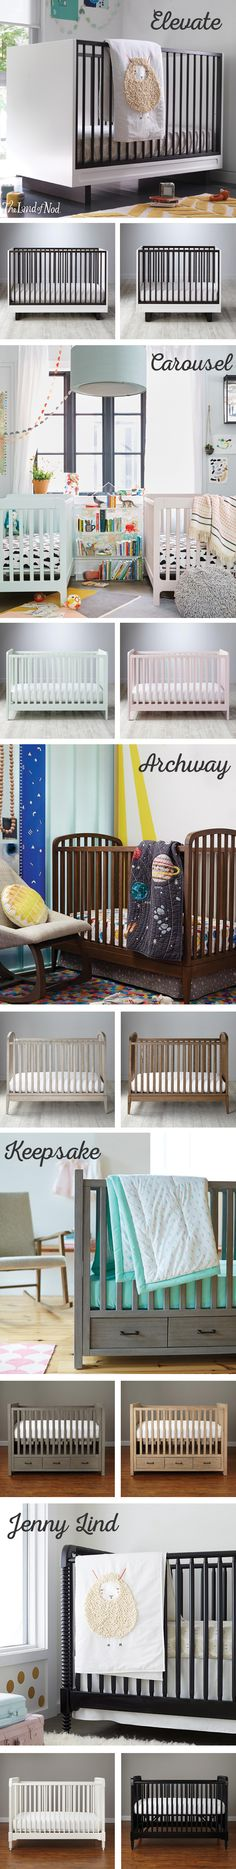 Expecting a new bundle of joy? Then we bet you're also looking for the perfect baby crib for the nursery. The Land of Nod's exclusive collection of nursery furniture is constructed from quality wood materials in modern and classic styles. You can choose from a variety of stylish colors and finishes, too. And, if you're short on space, our mini cribs and built-in storage compartments make a welcome addition. Just don't forget to finish the nursery with super cozy crib bedding.